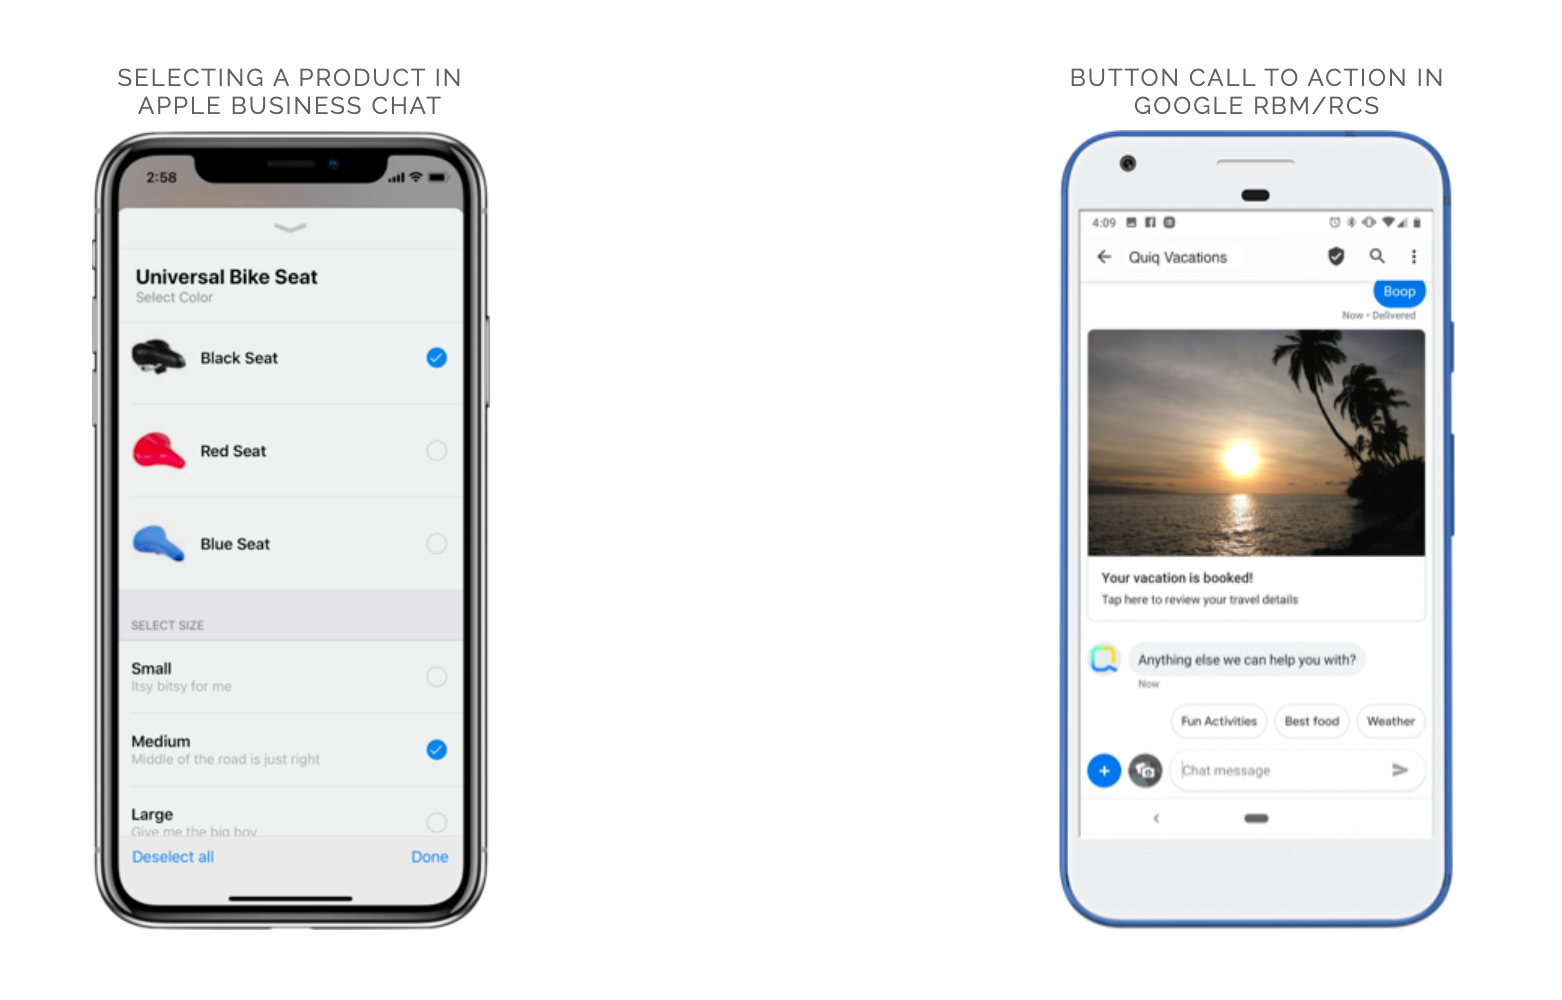 Apple Business Chat and Google Rich Business messaging on two phones